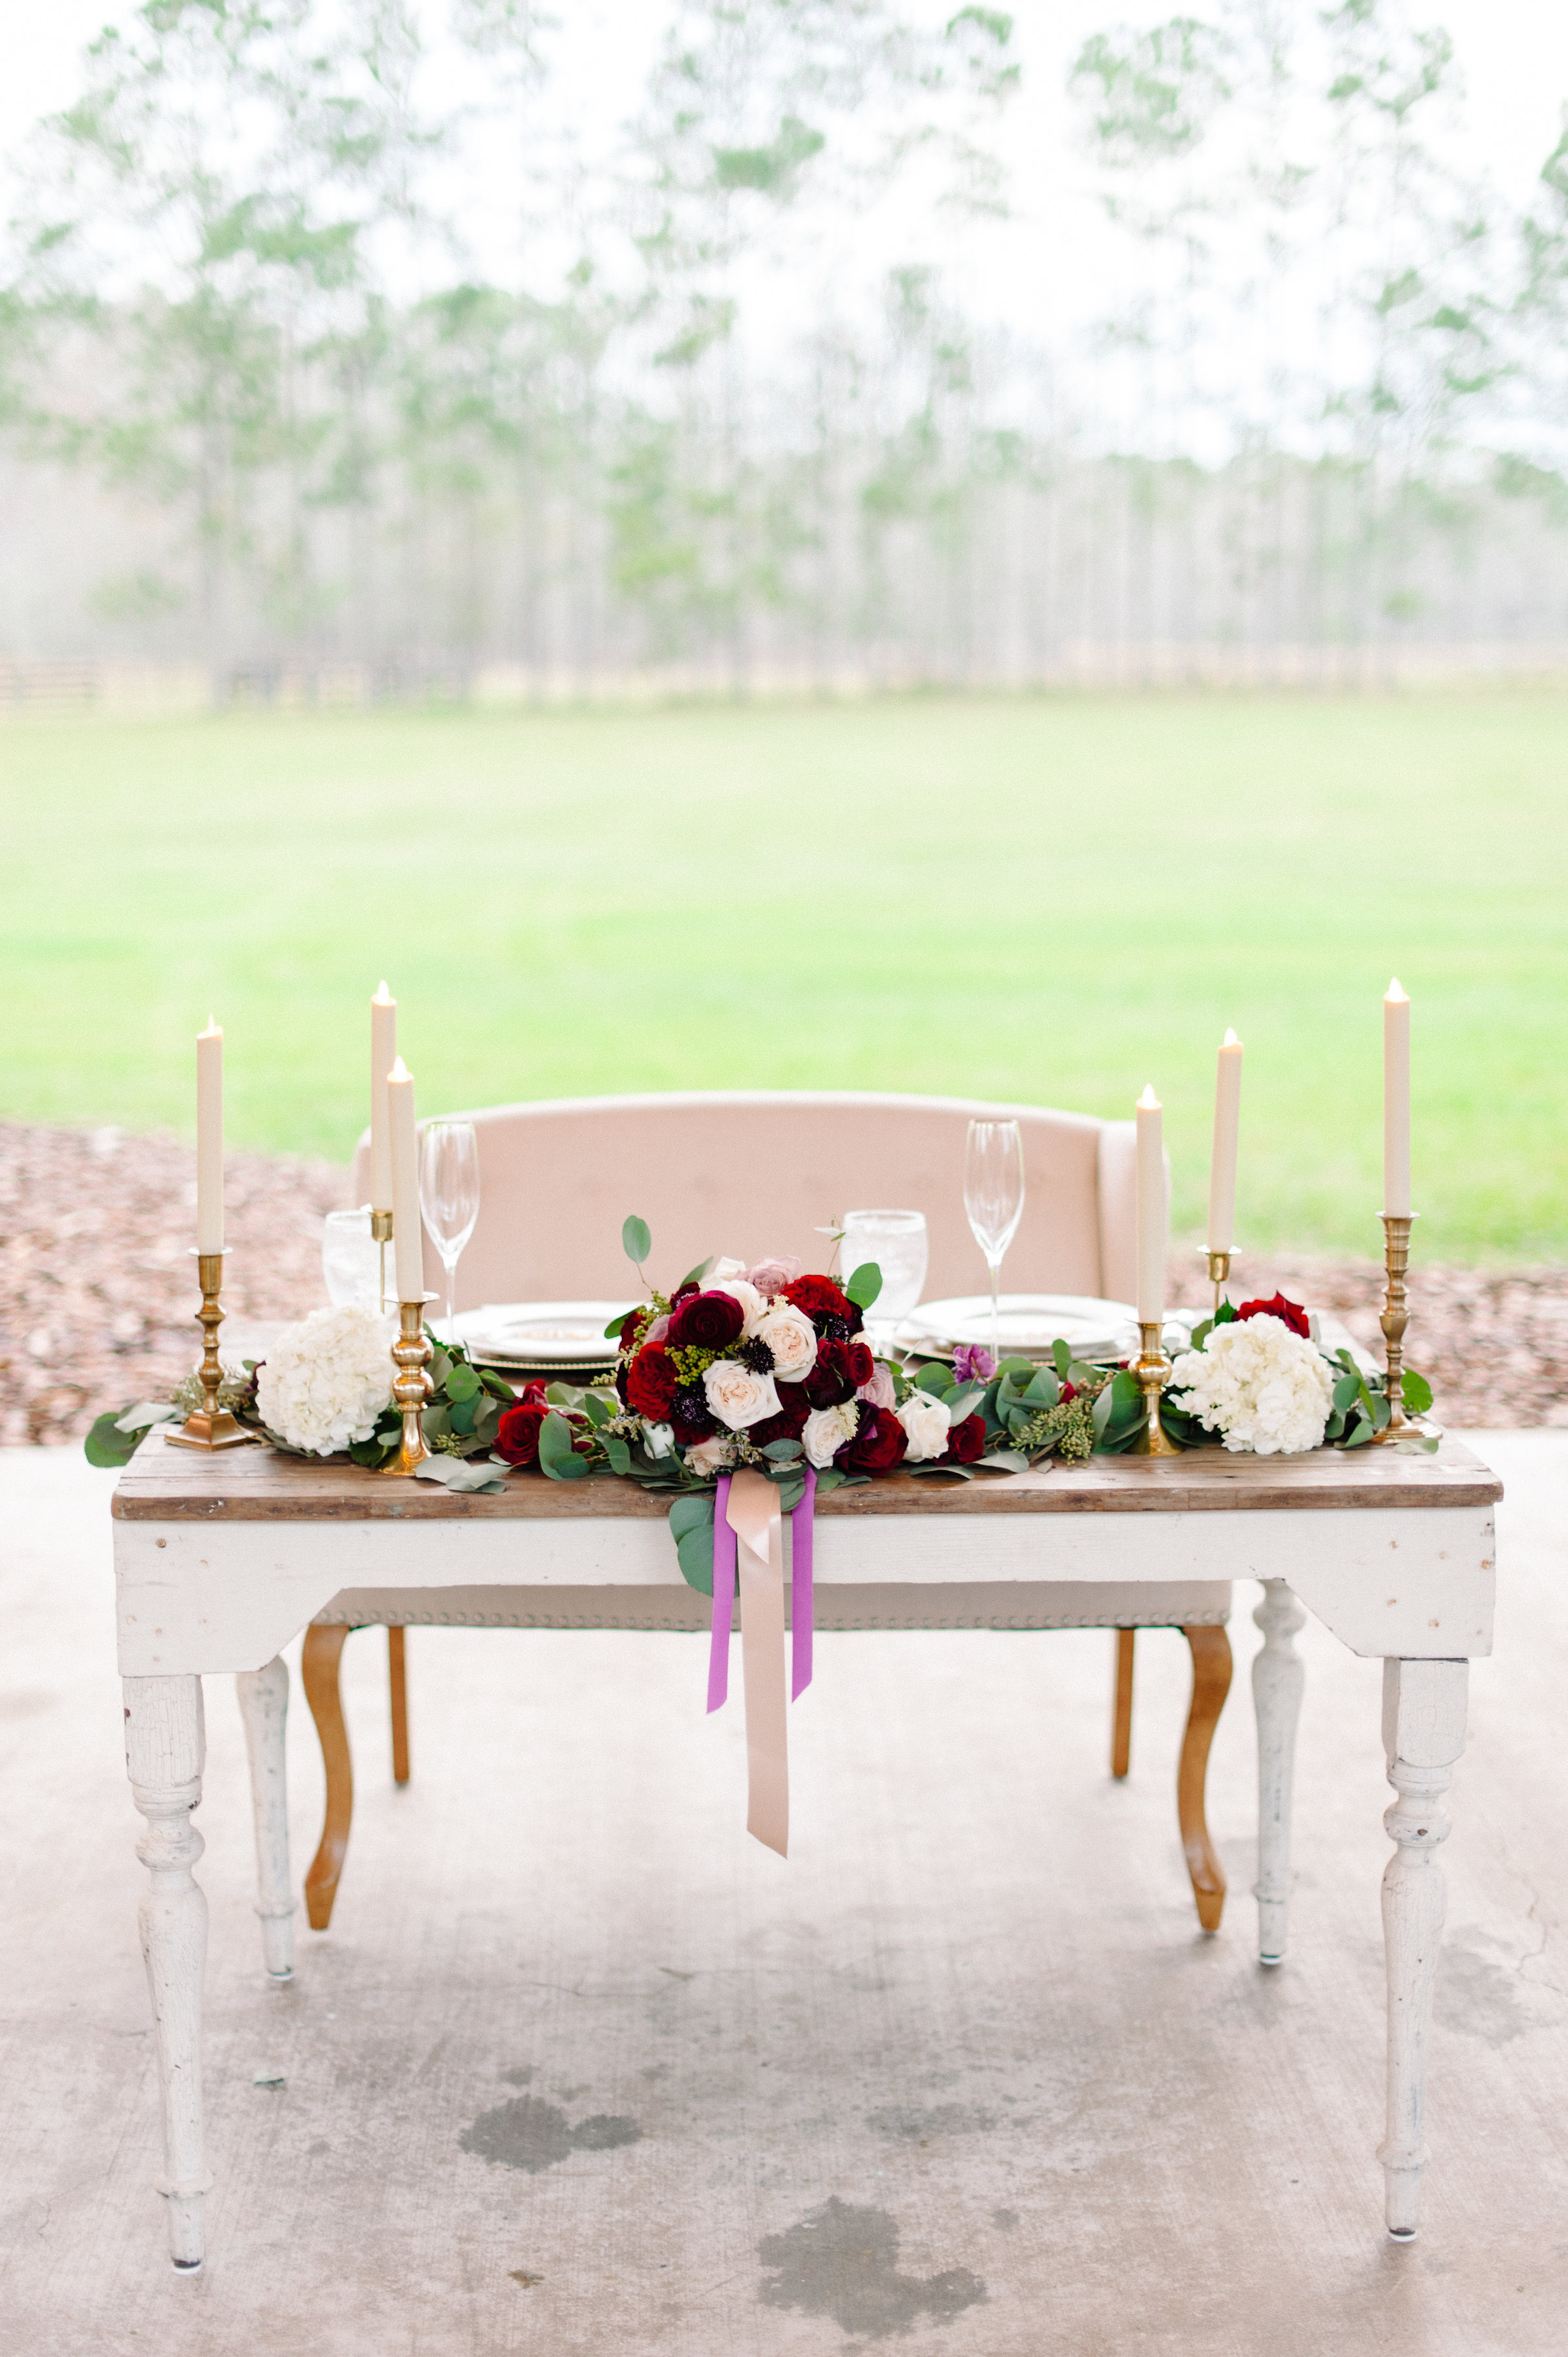 Sweetheart table with elegant candlesticks, highlighting the bridal bouquet